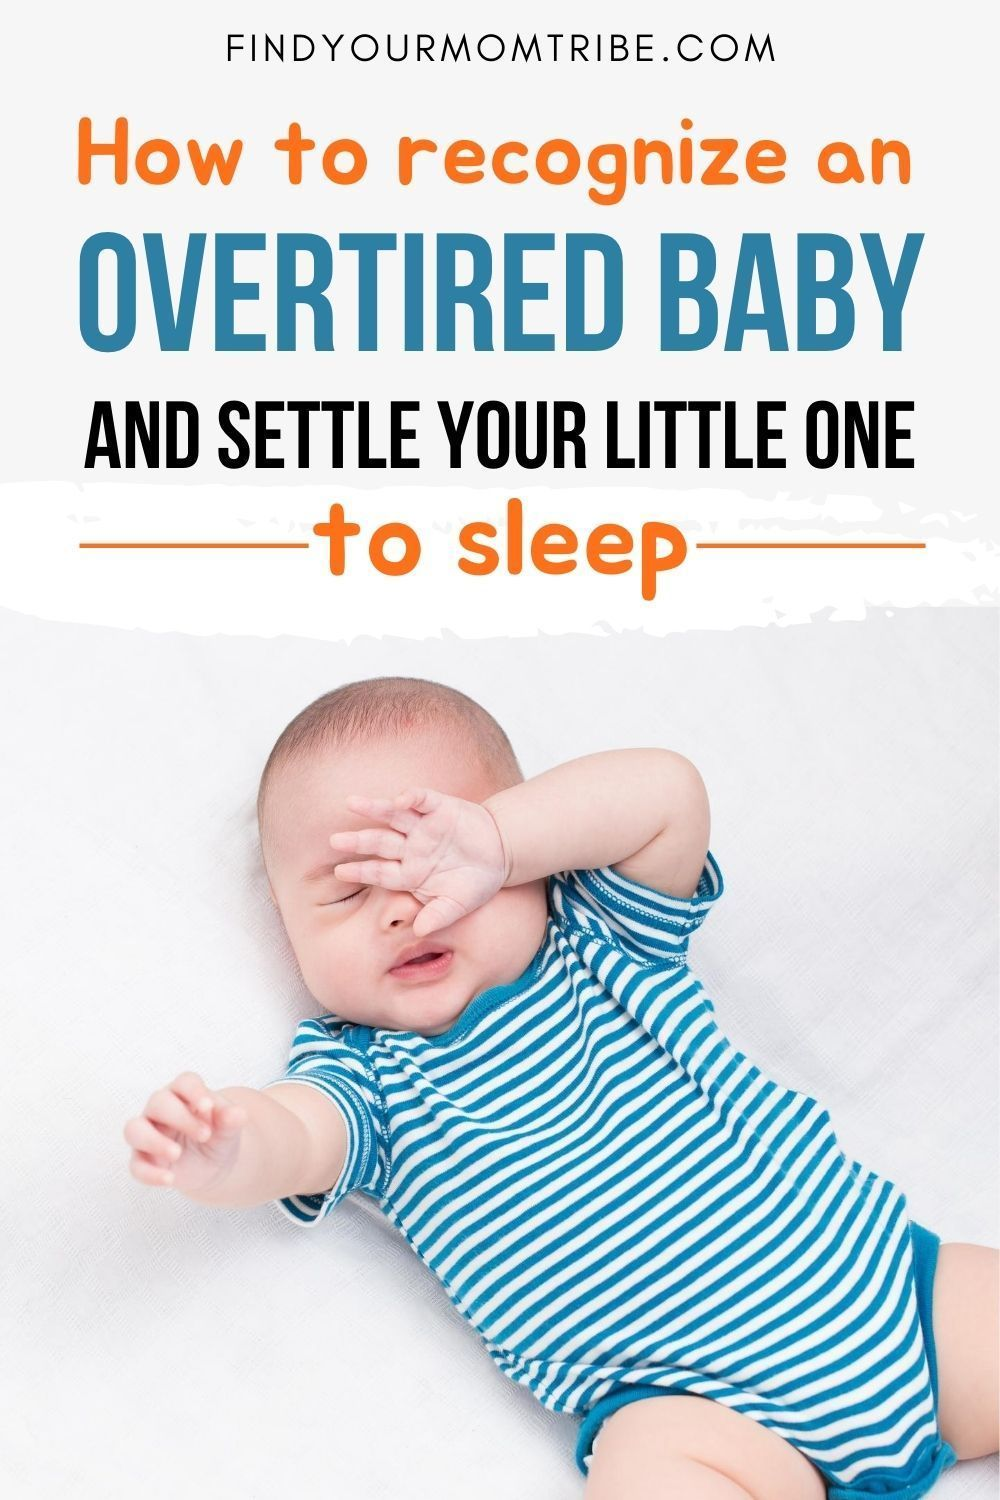 8 signs of an overtired baby and how to get them to sleep